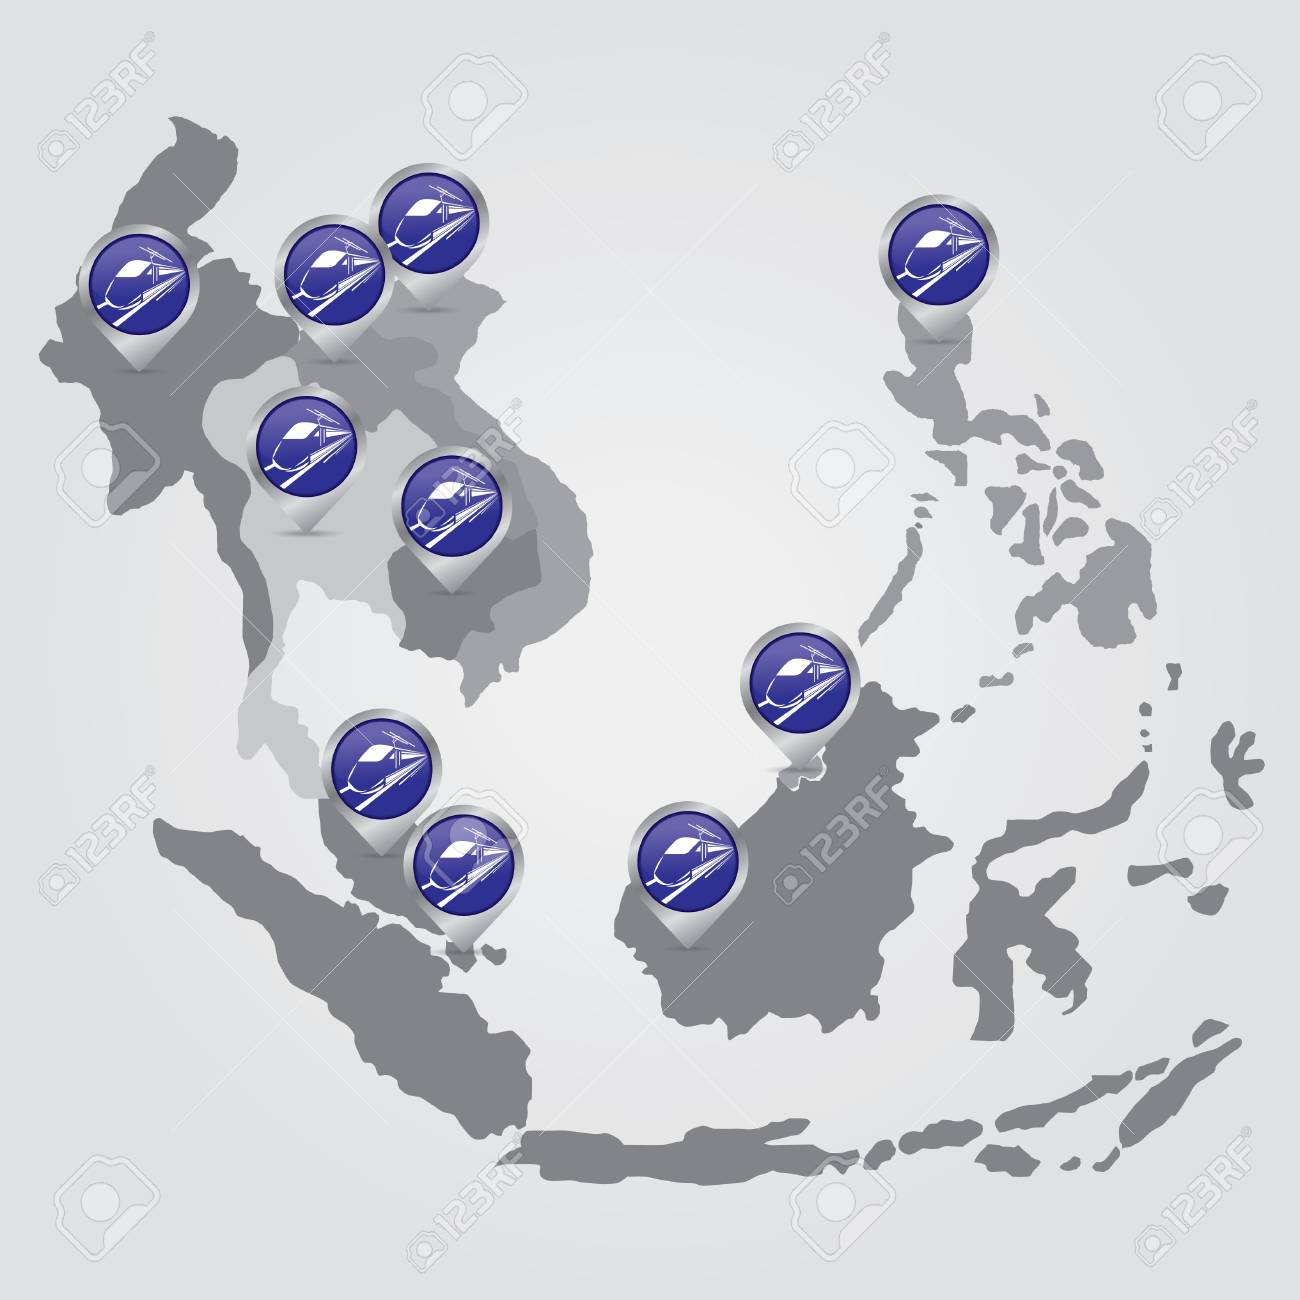 hight resolution of check in transit asia stock photo 16963951